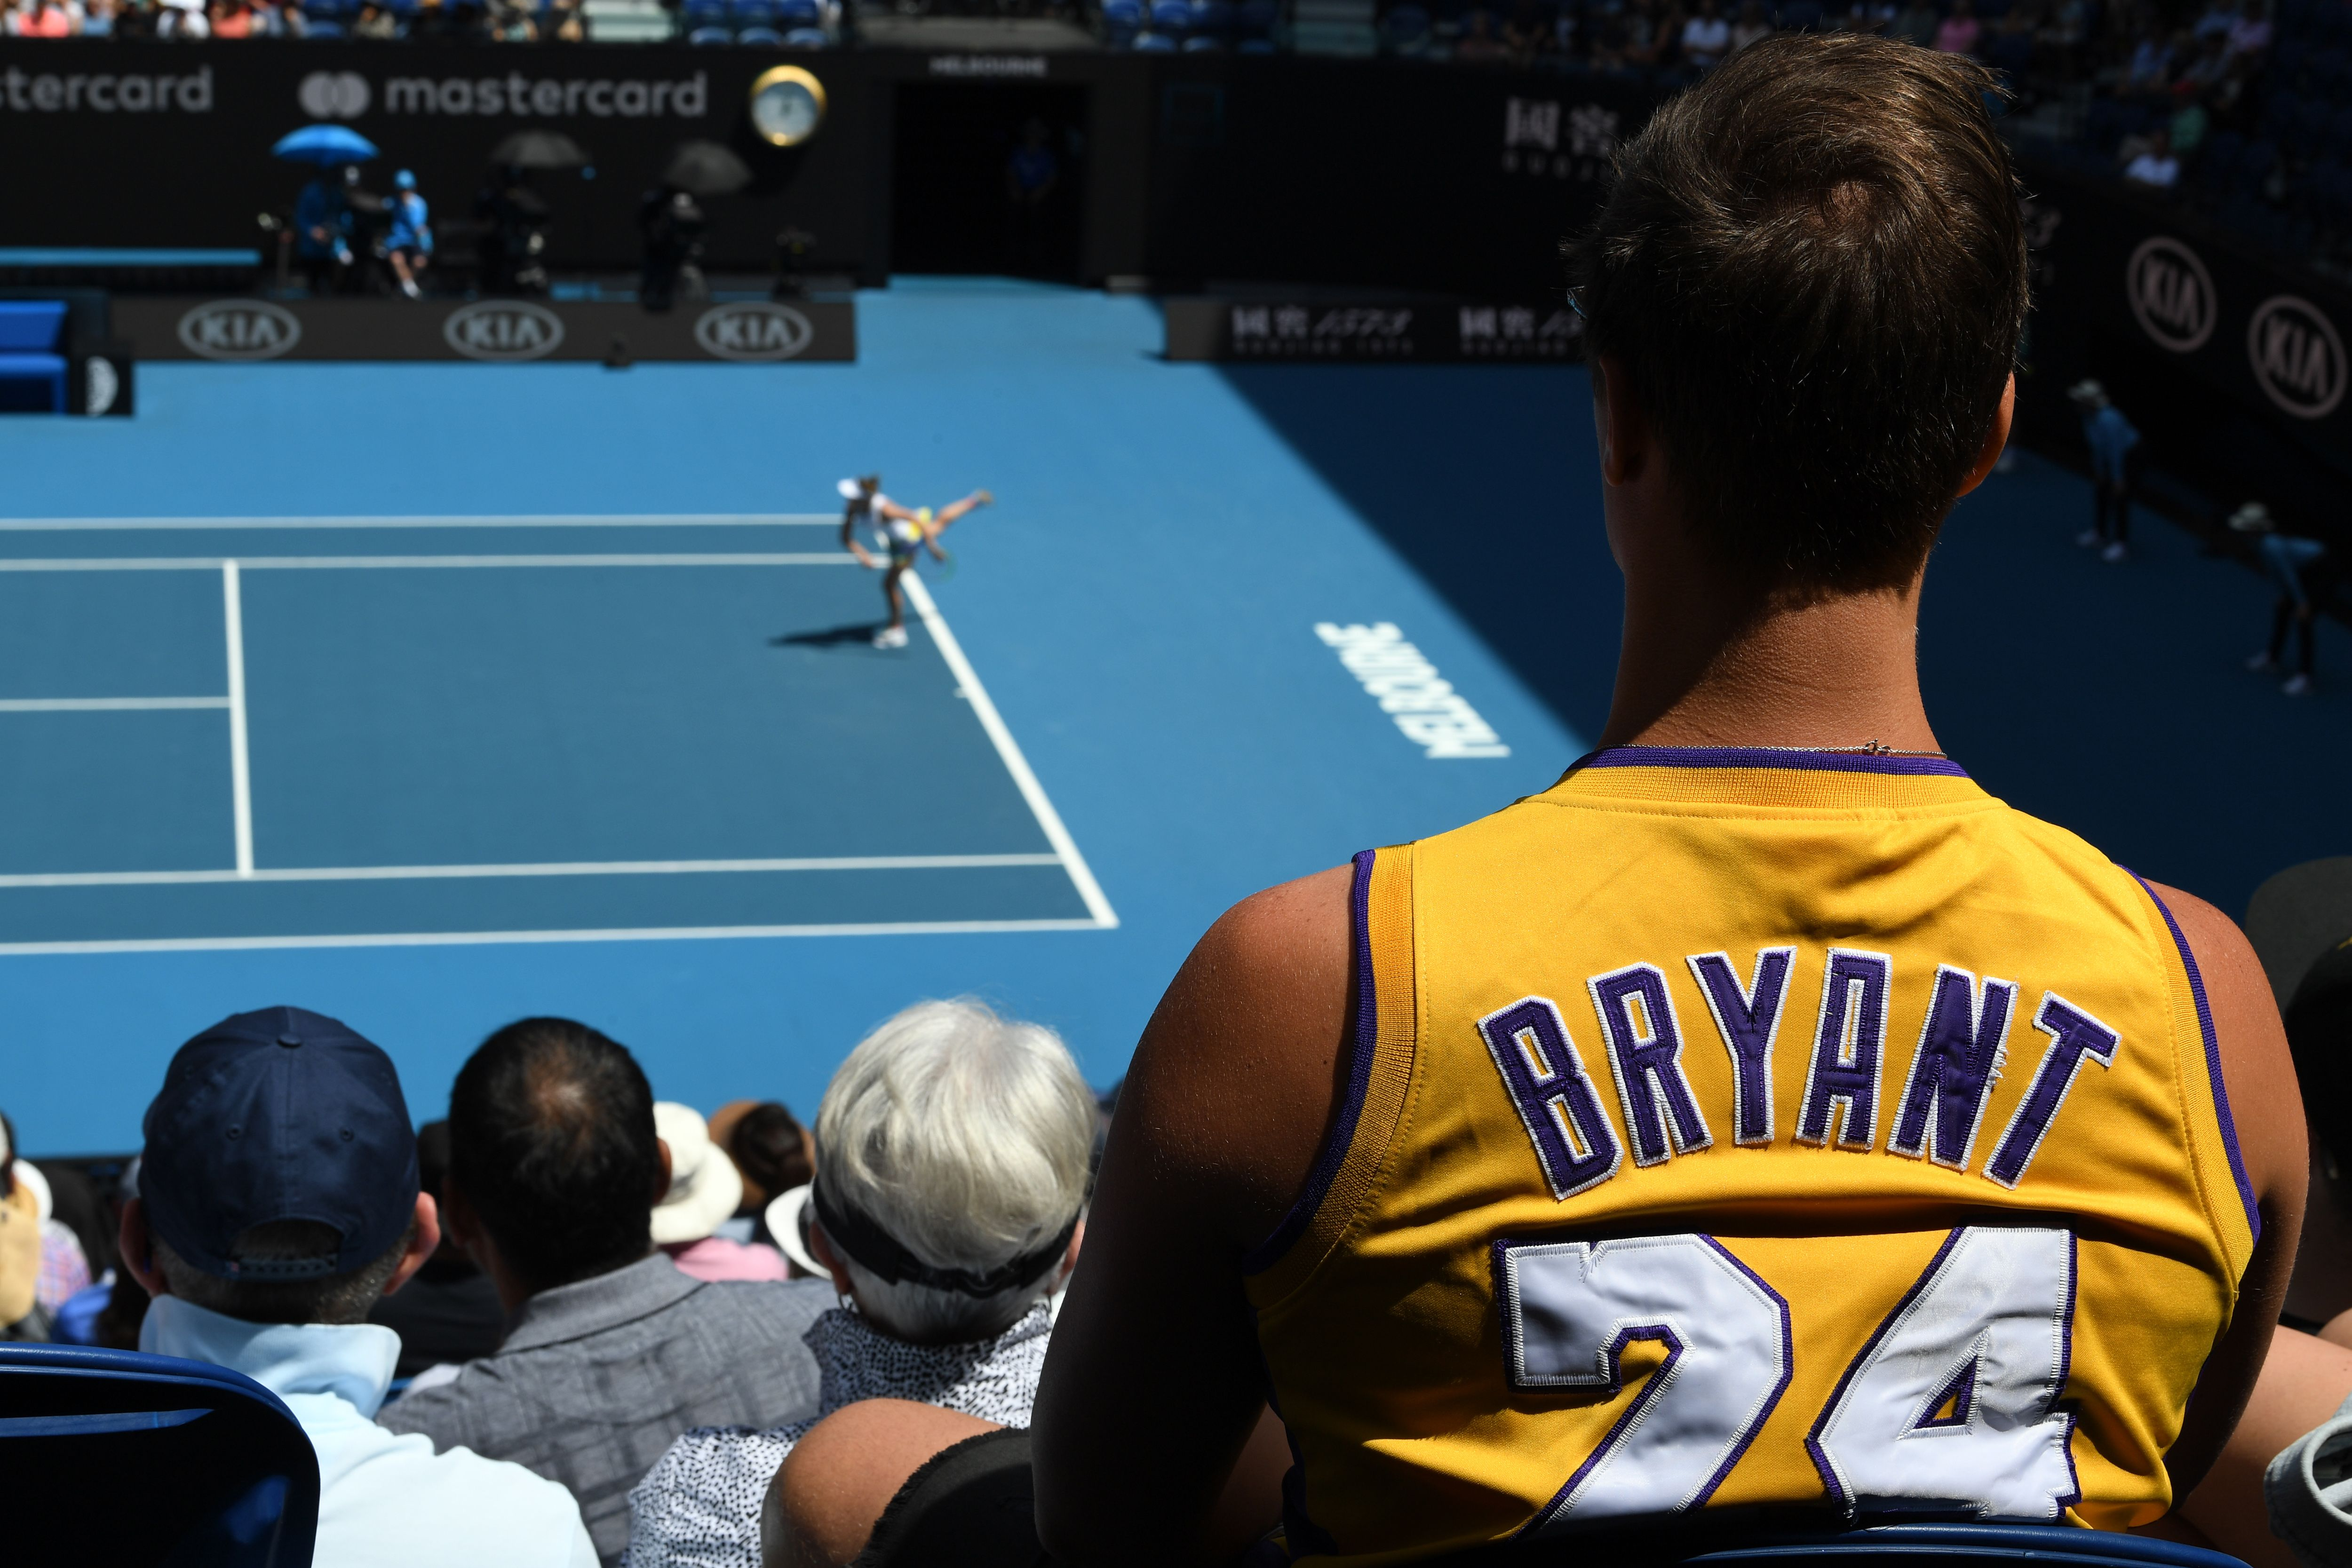 A spectator wears a Kobe Bryant jersey at the Australian Open tennis tournament in Melbourne on January 27, 2020.